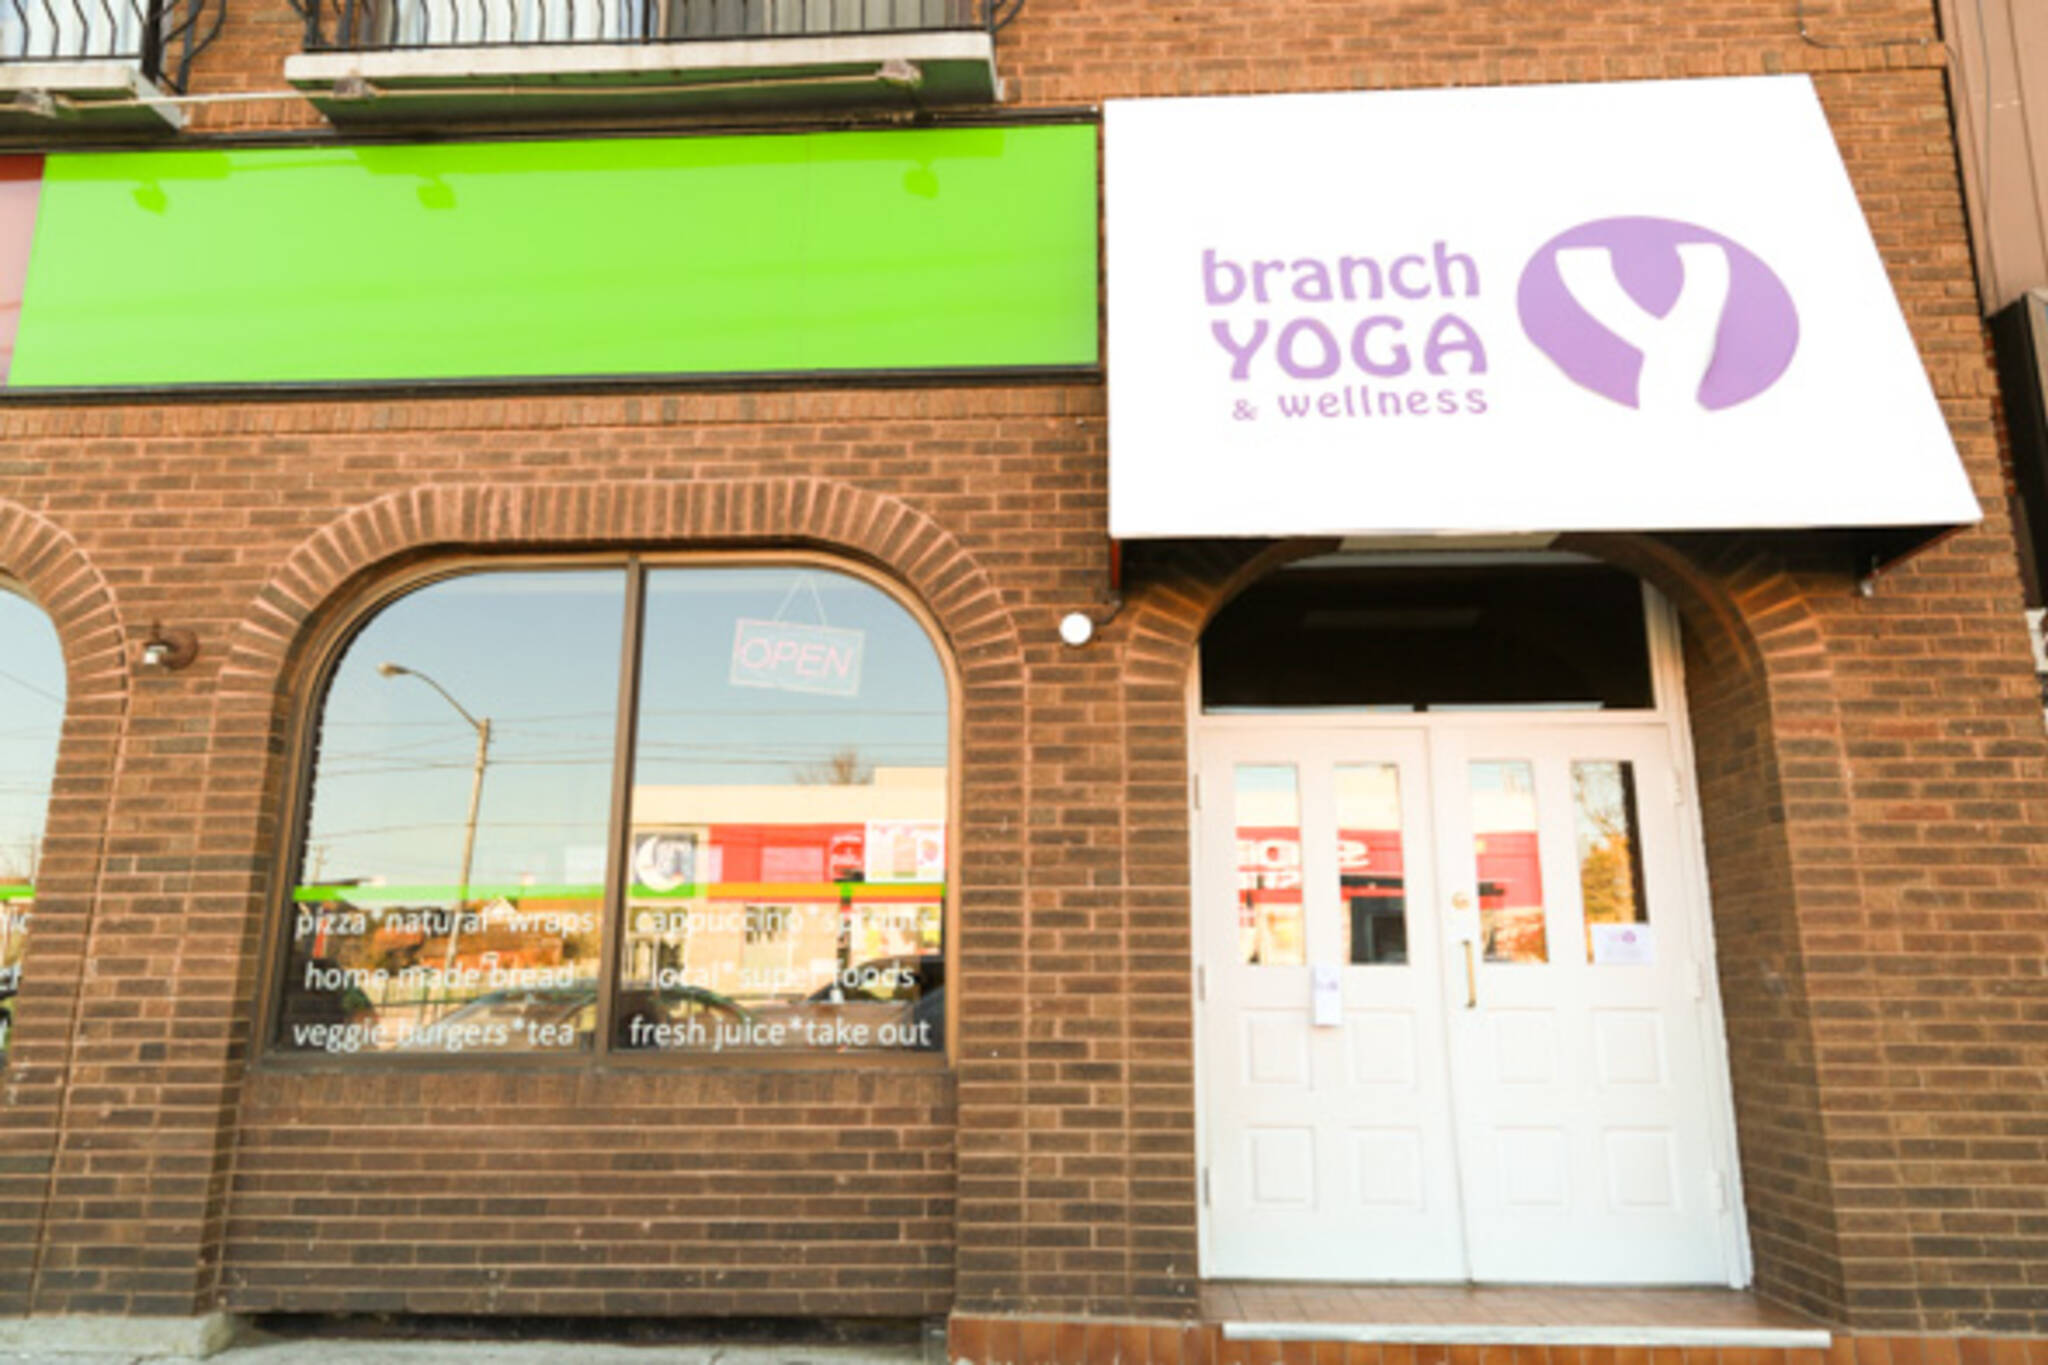 branch yoga and wellness